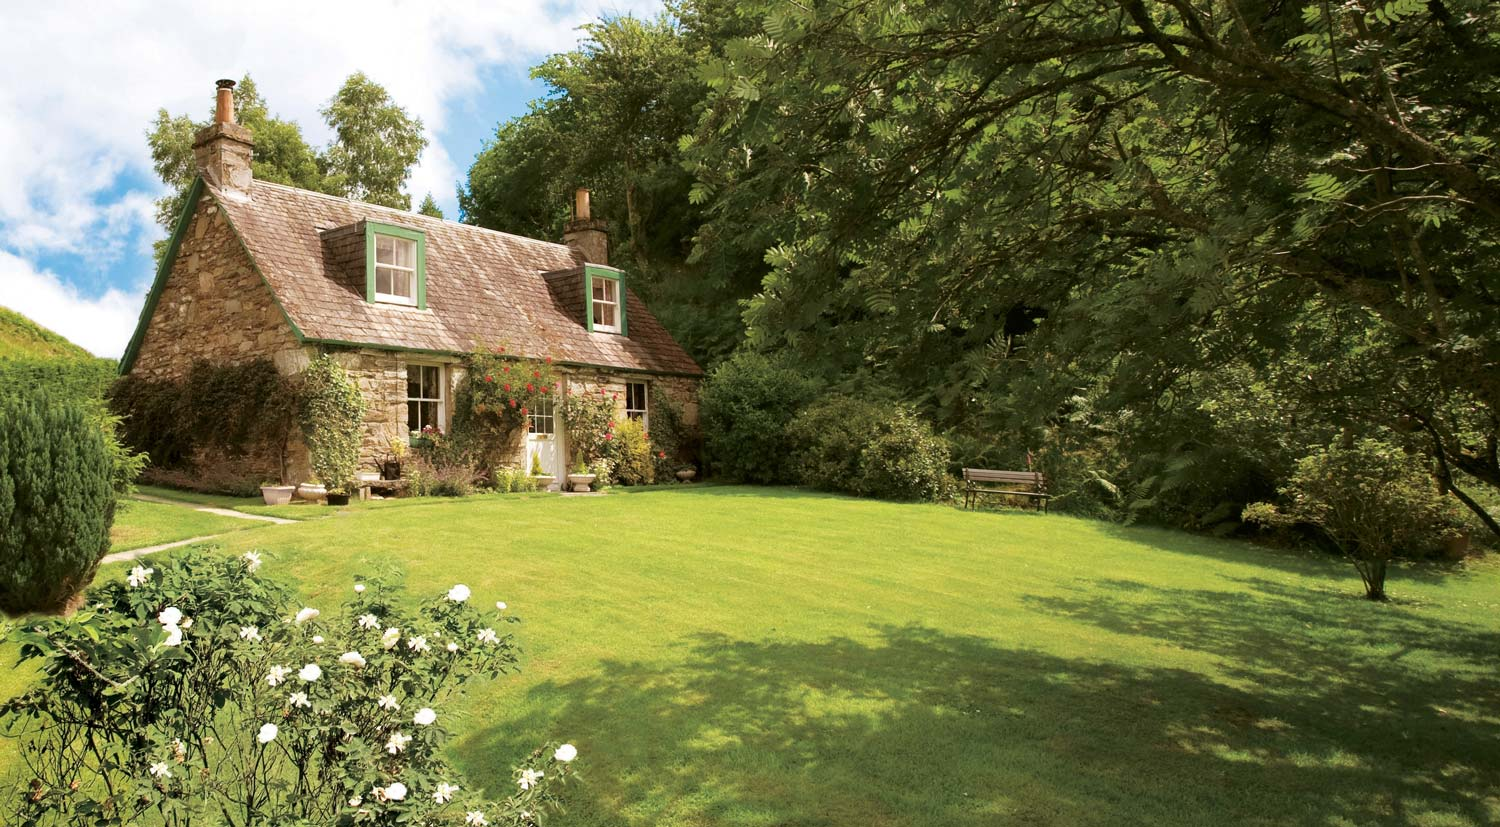 Picture of England - Last Minute Cottages in England